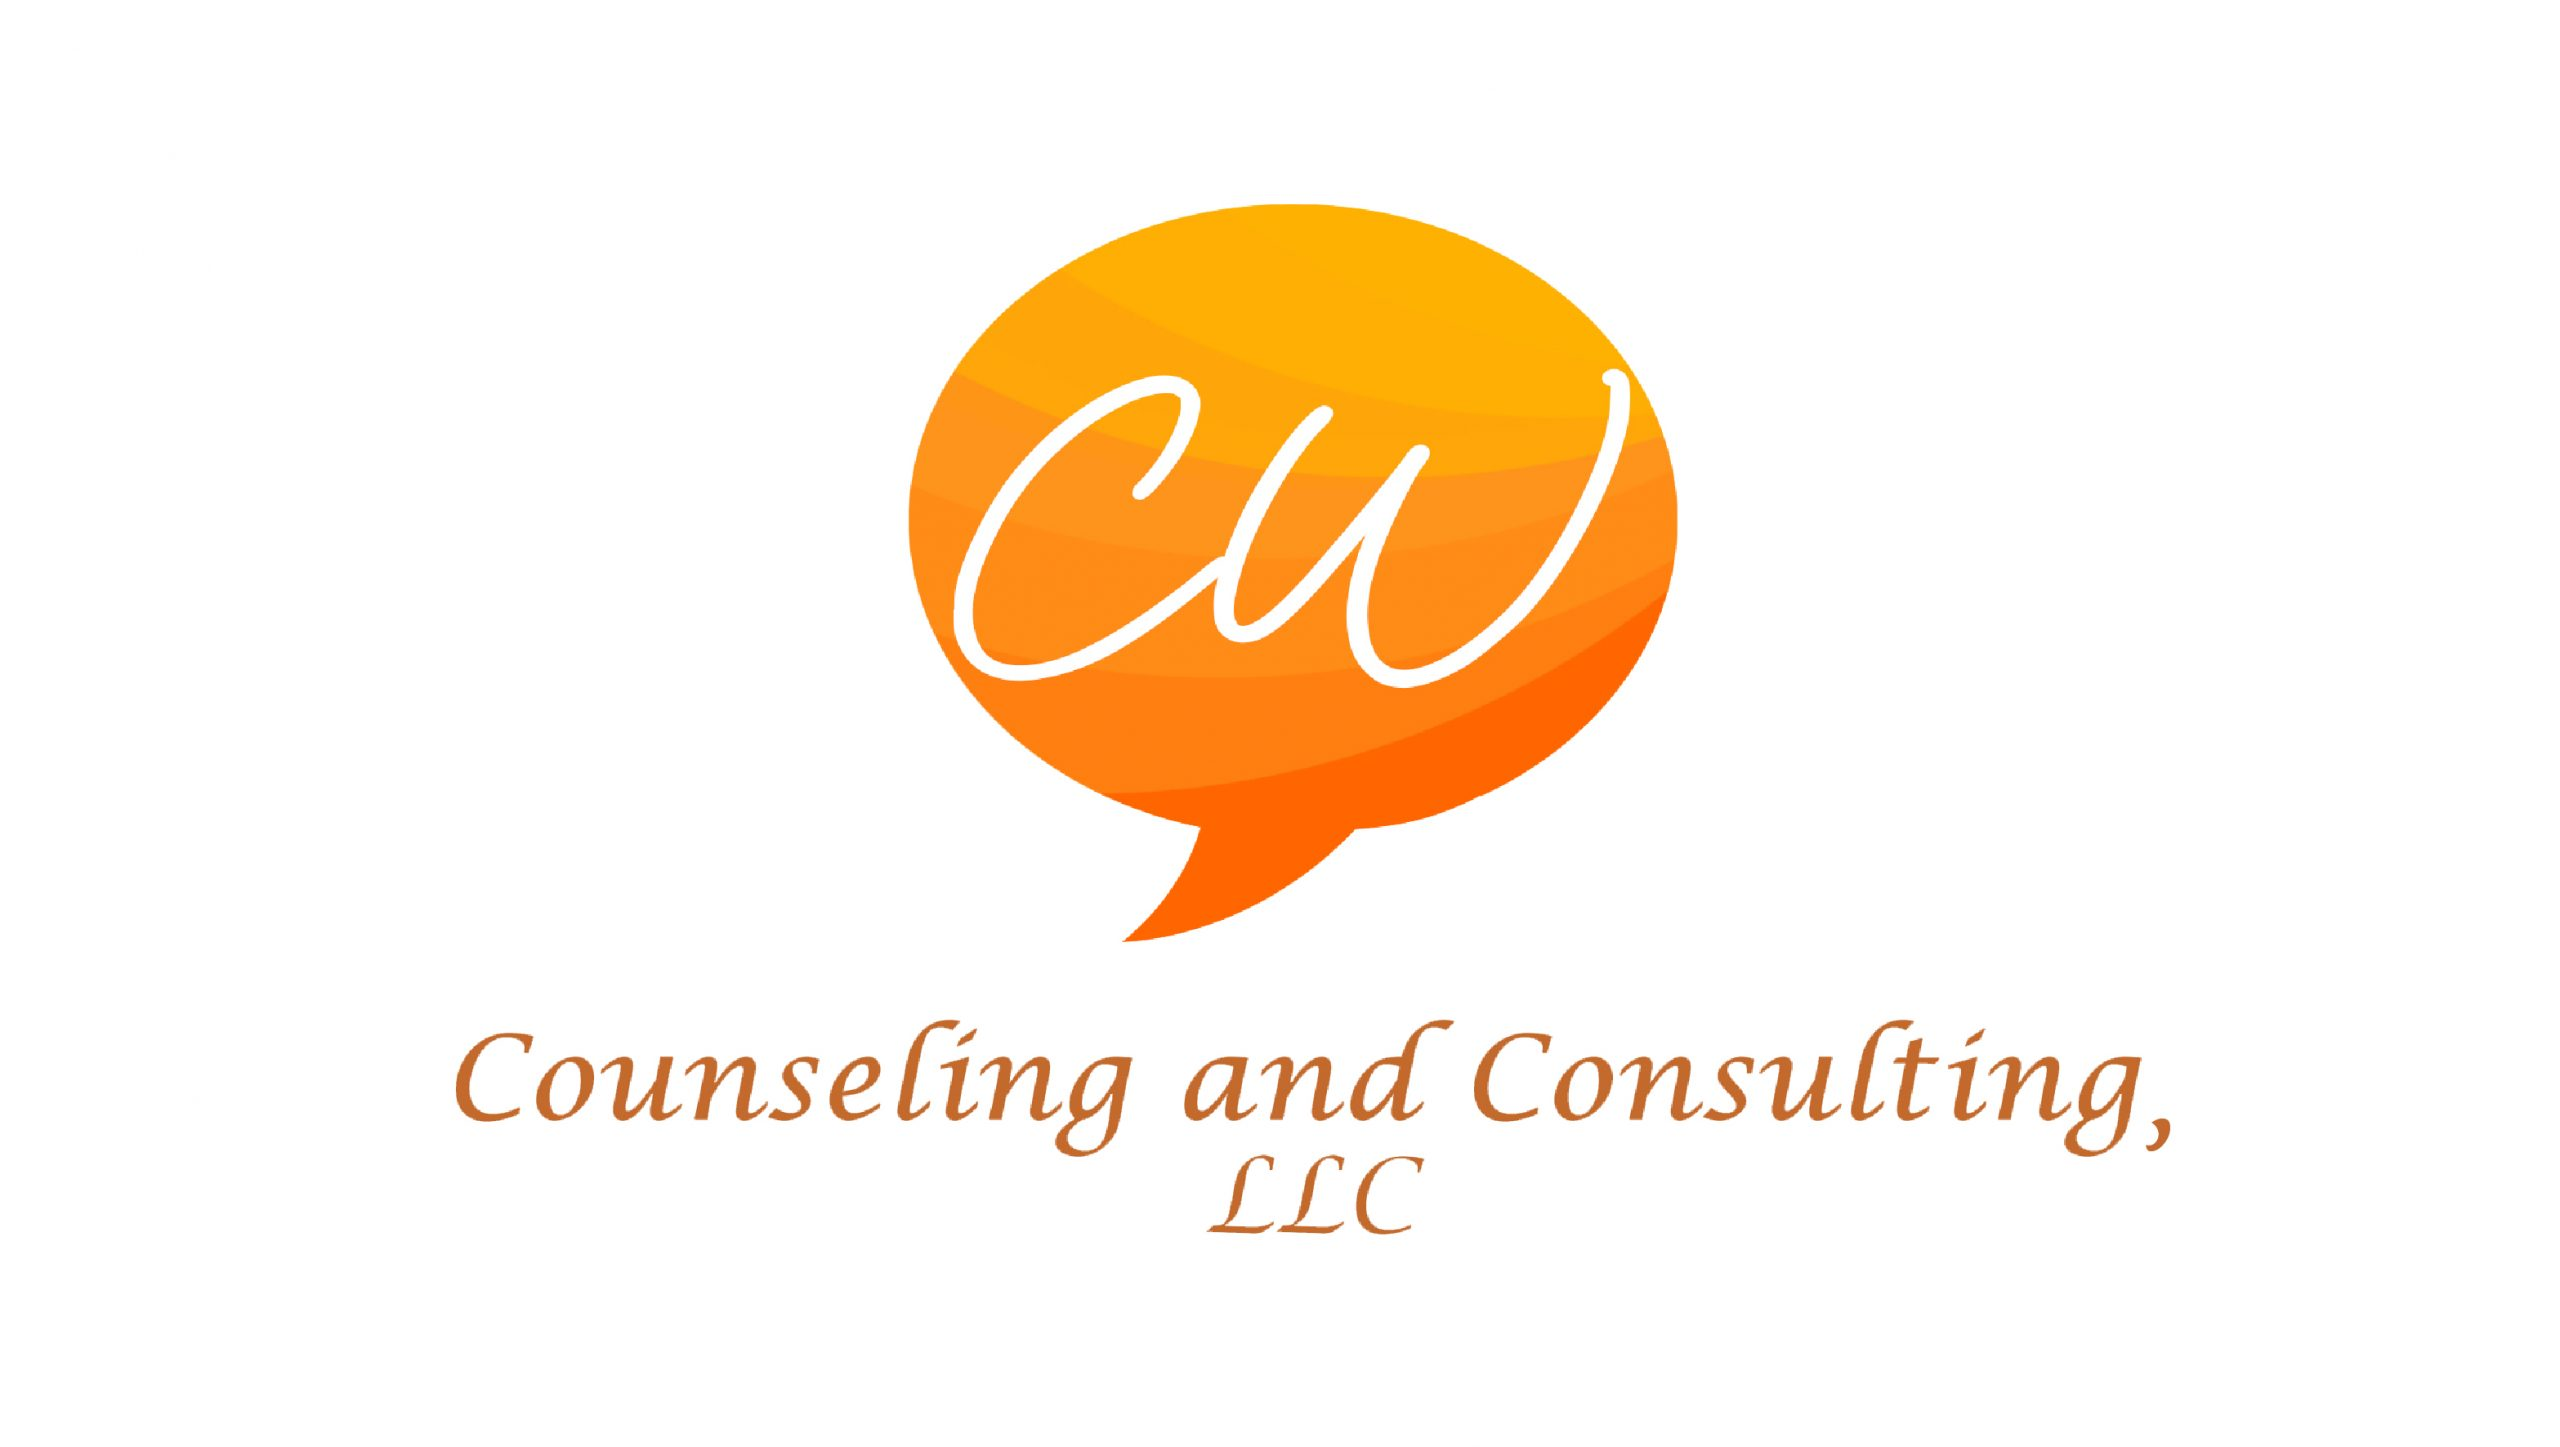 CW COUNSELING AND CONSULTING